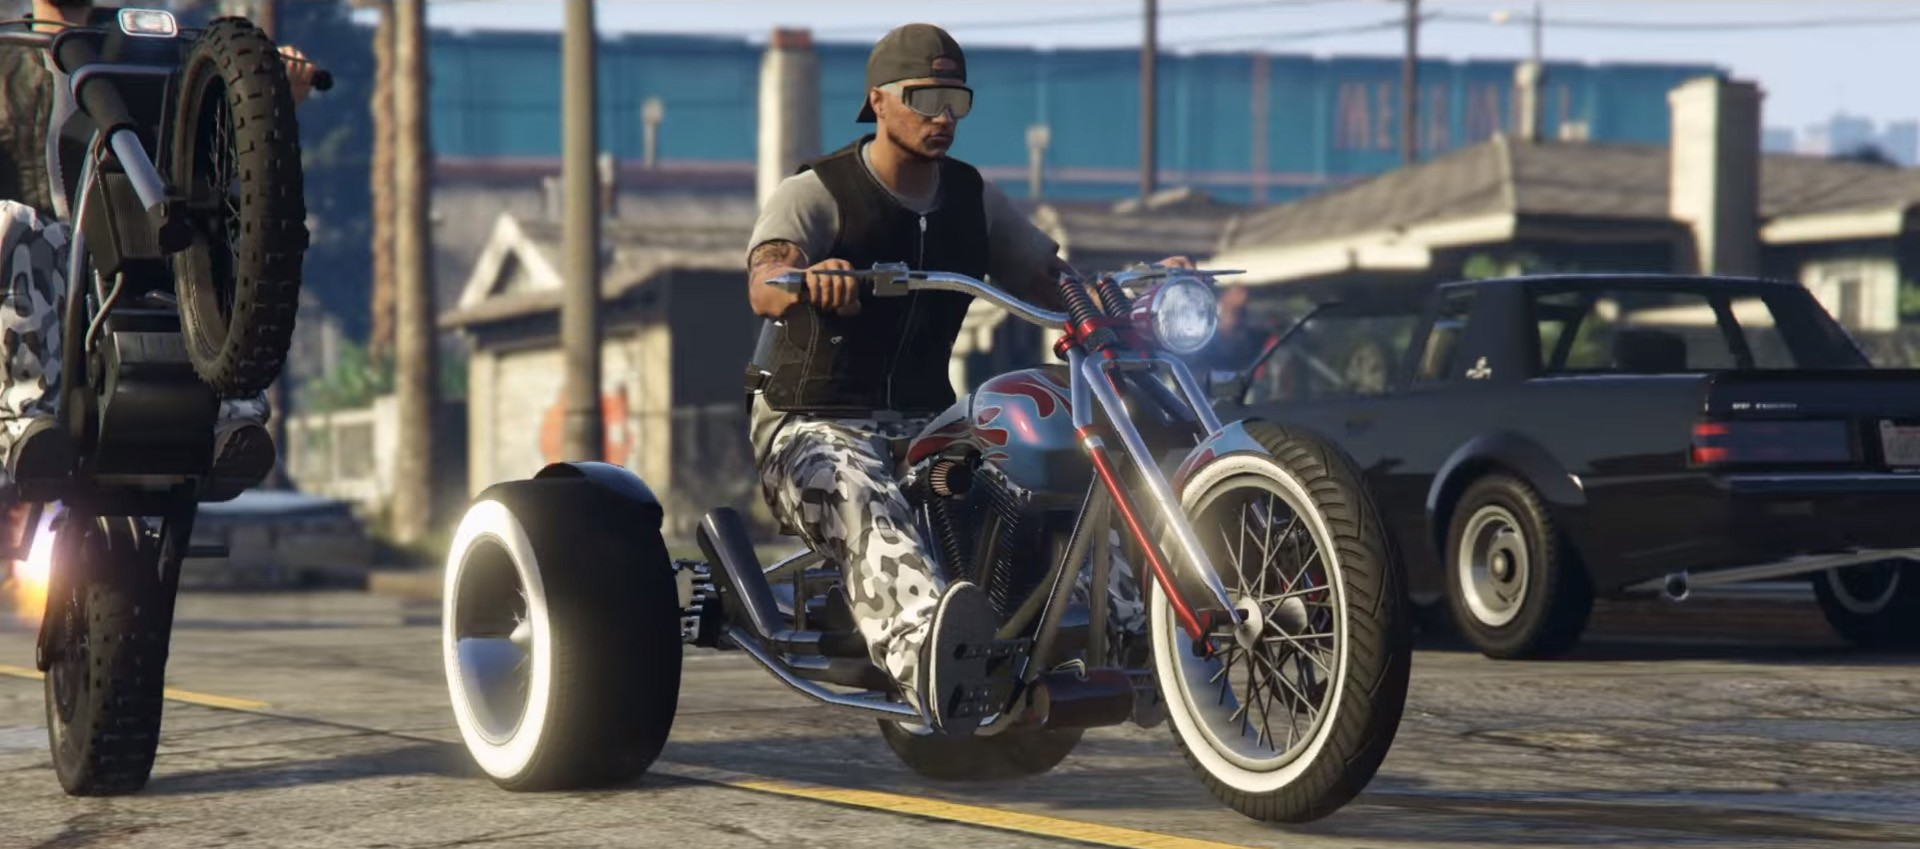 Bikers taunt officer pinned in crashed cruiser autoevolution for How do you rob the jewelry store in jailbreak